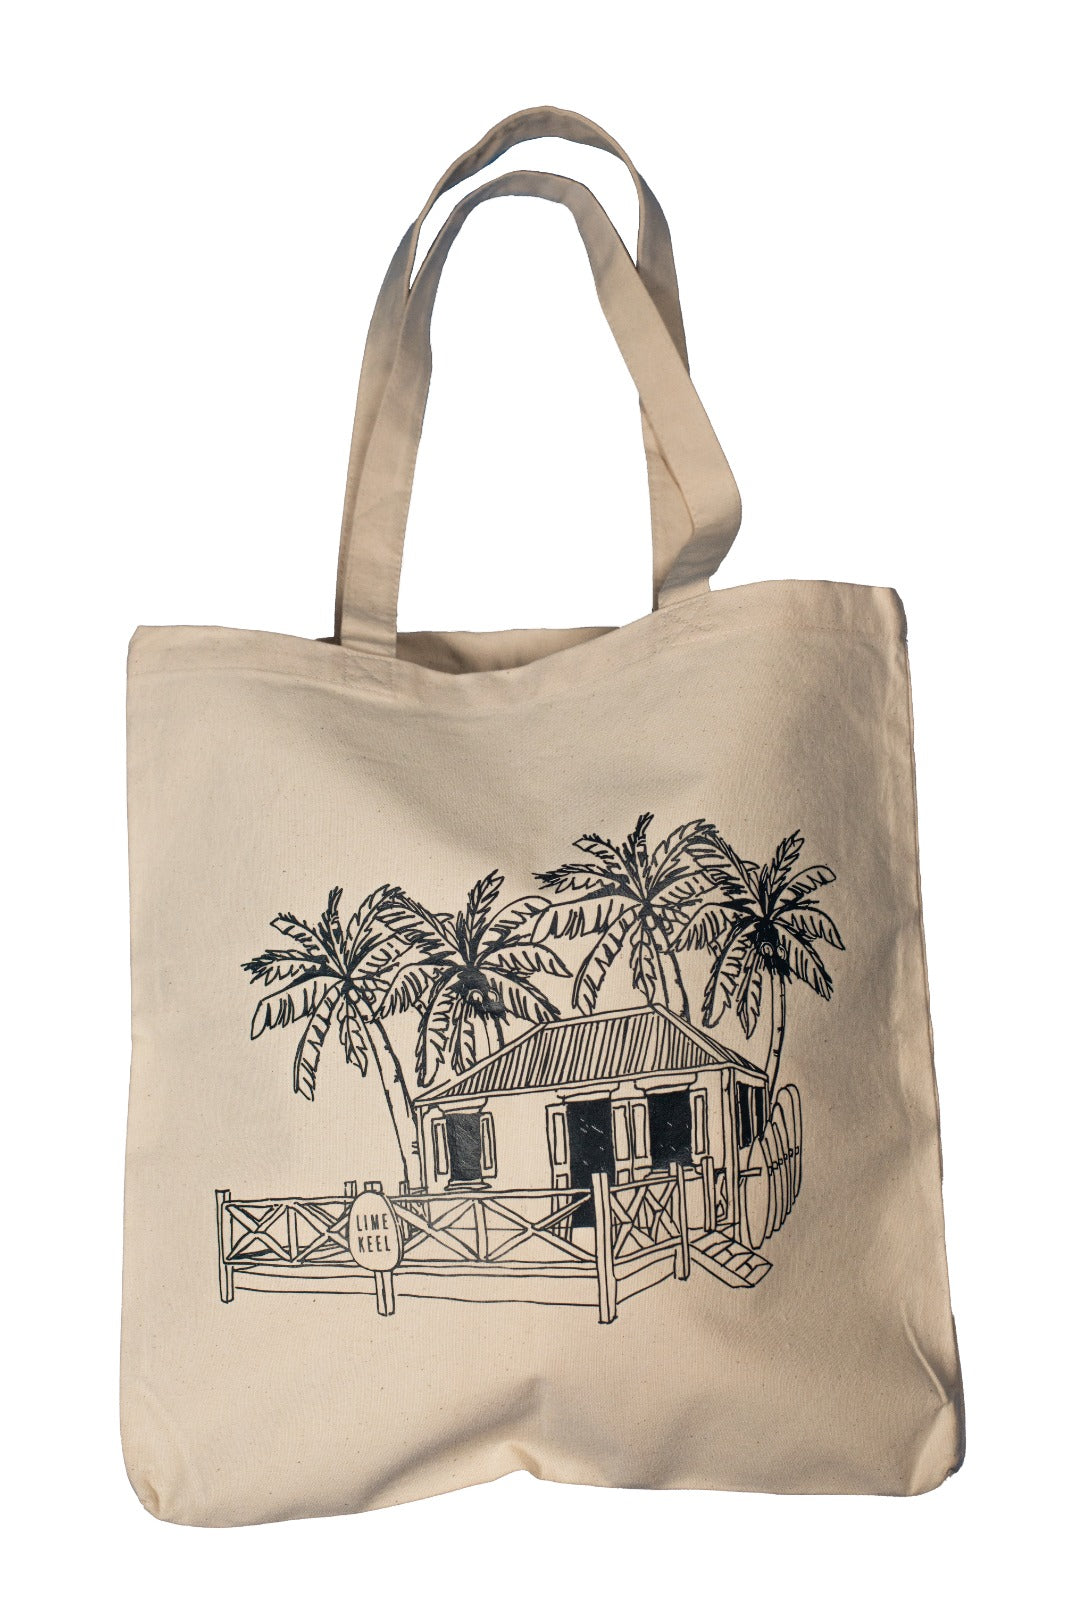 LIME KEEL TOTE BAG